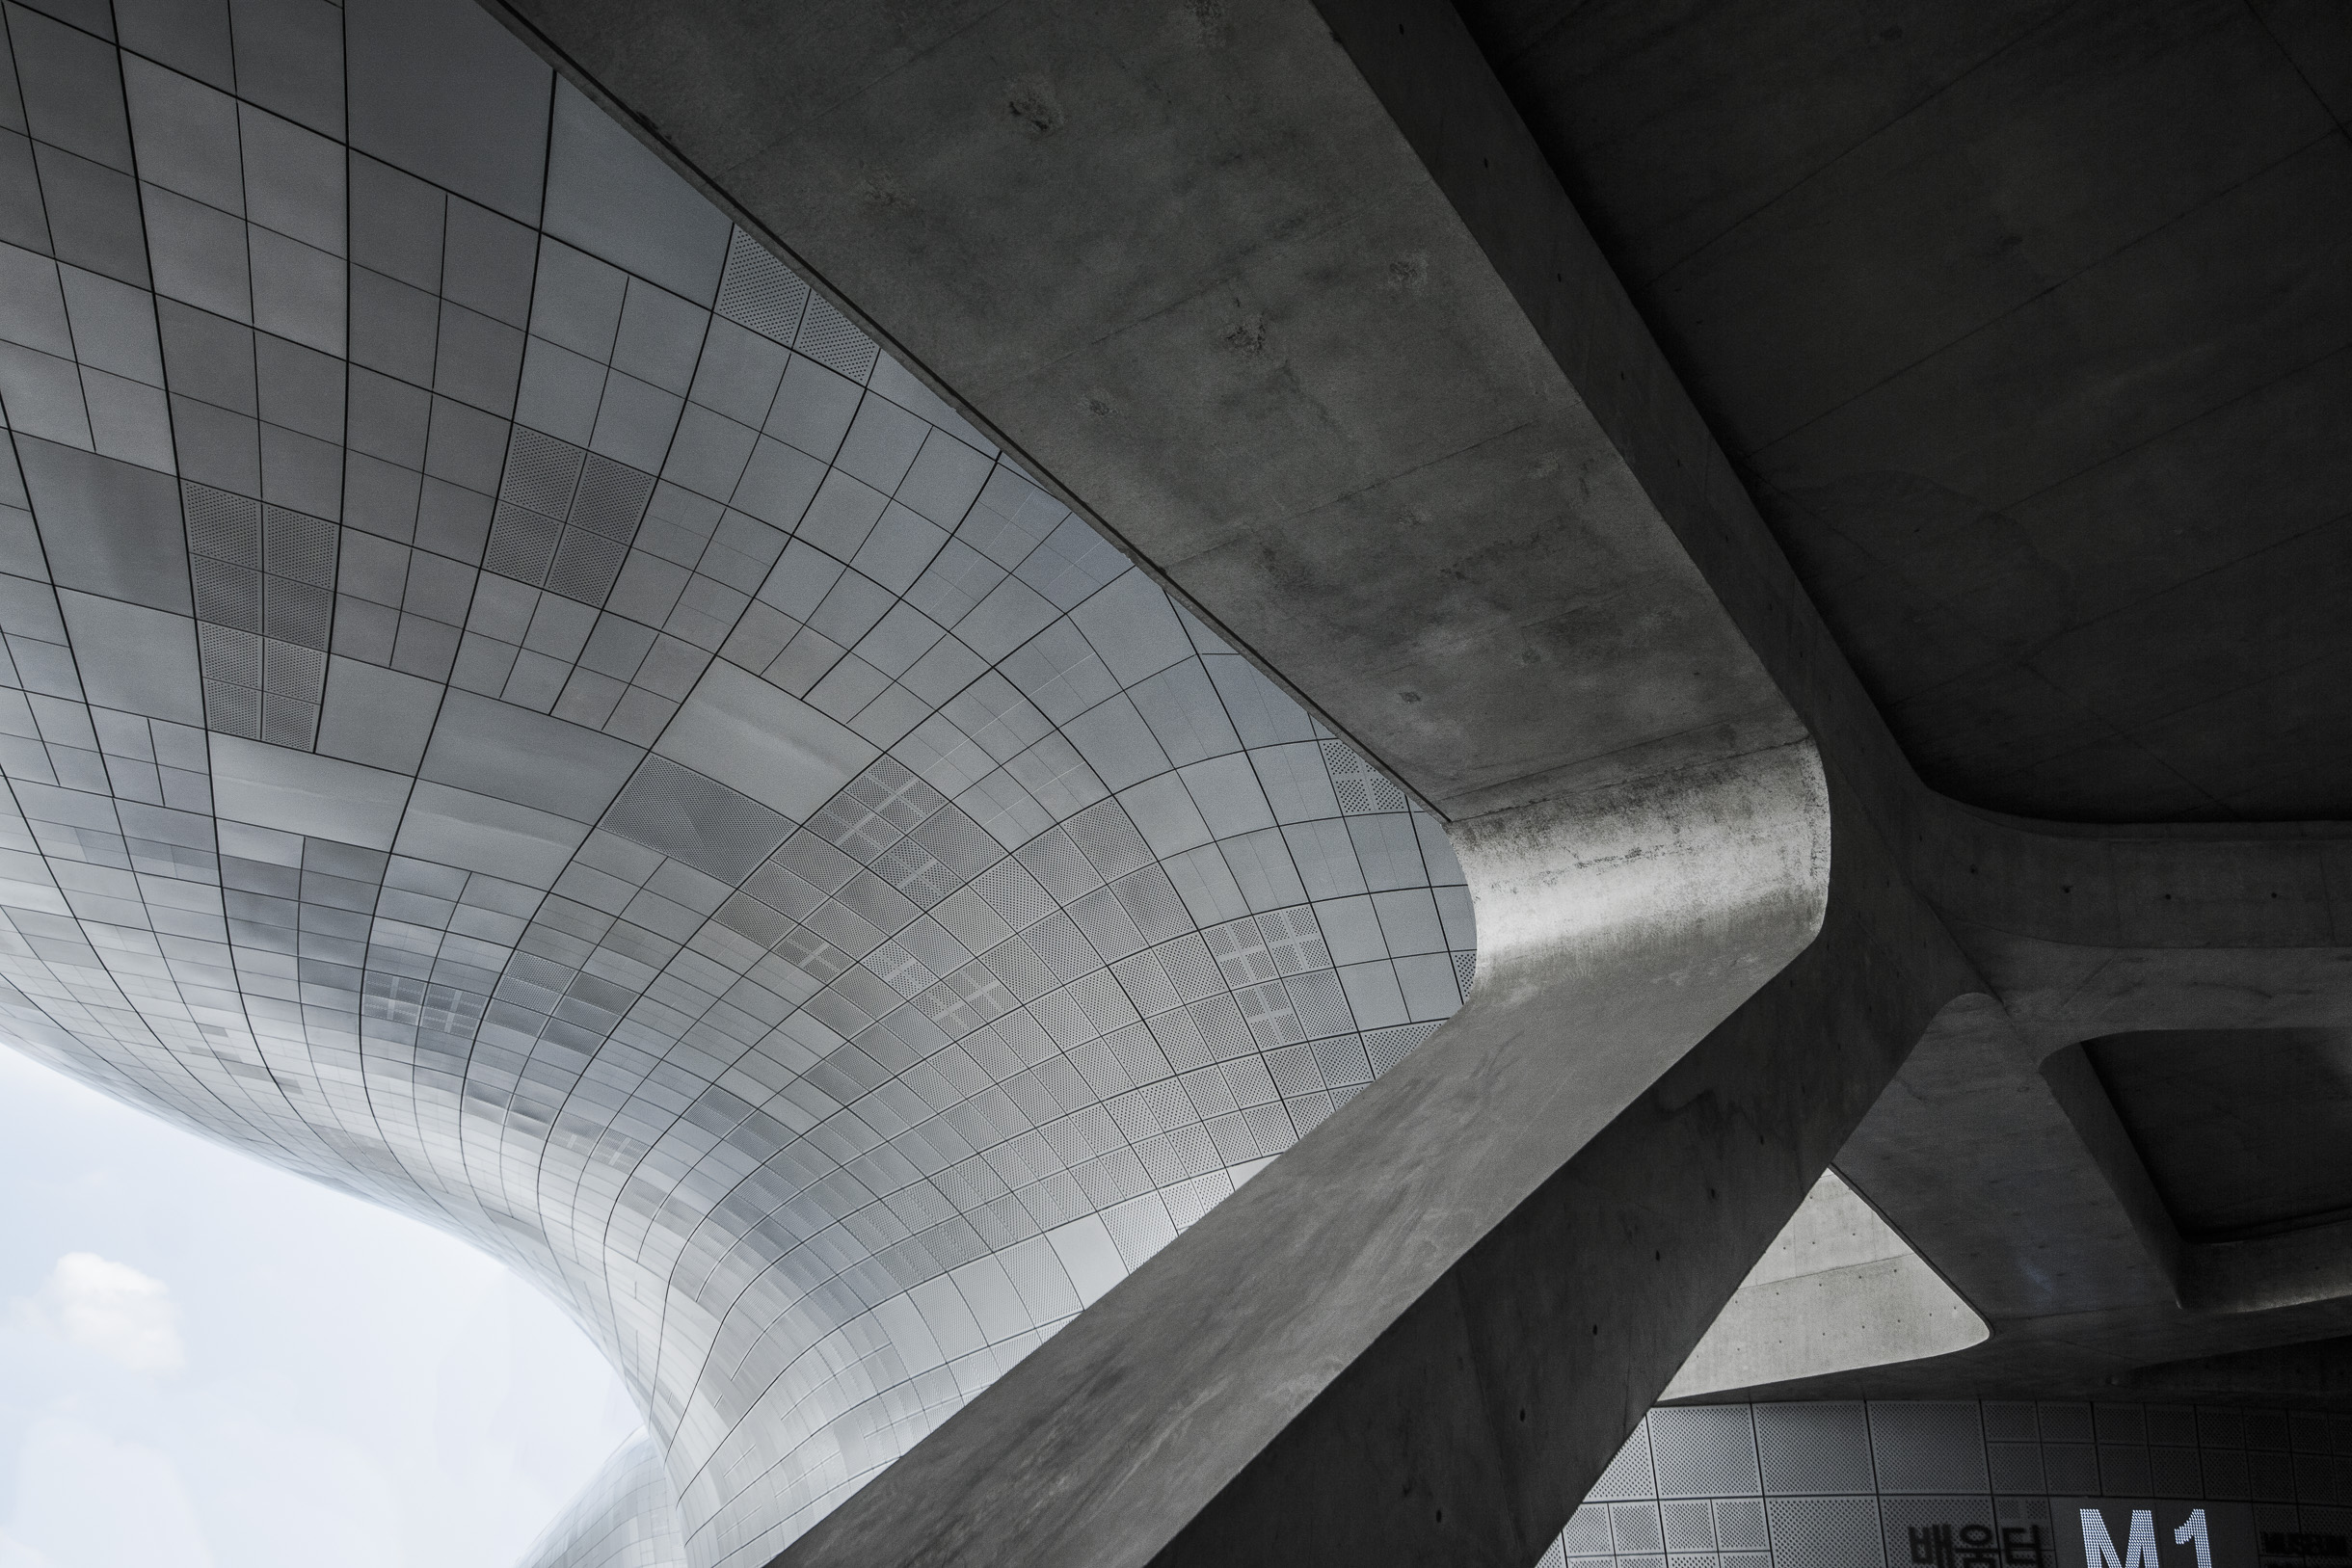 Dongdaemun Design Plaza by Zaha Hadid